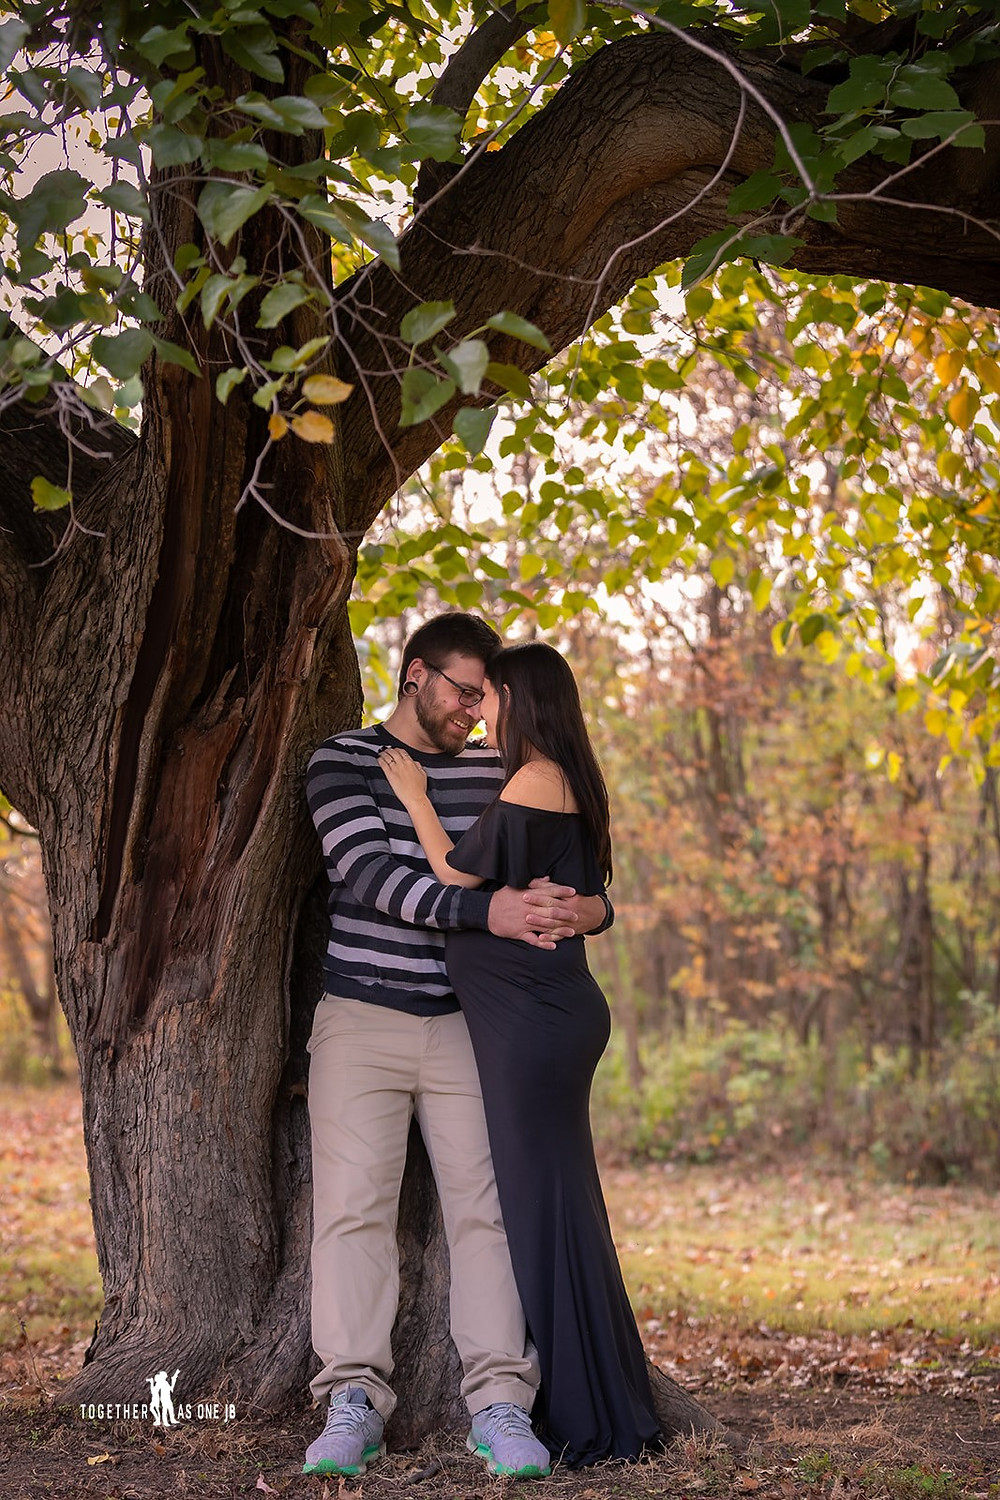 Cincinnati wedding photographer captures portrait of couple holding each other smiling in the woods.